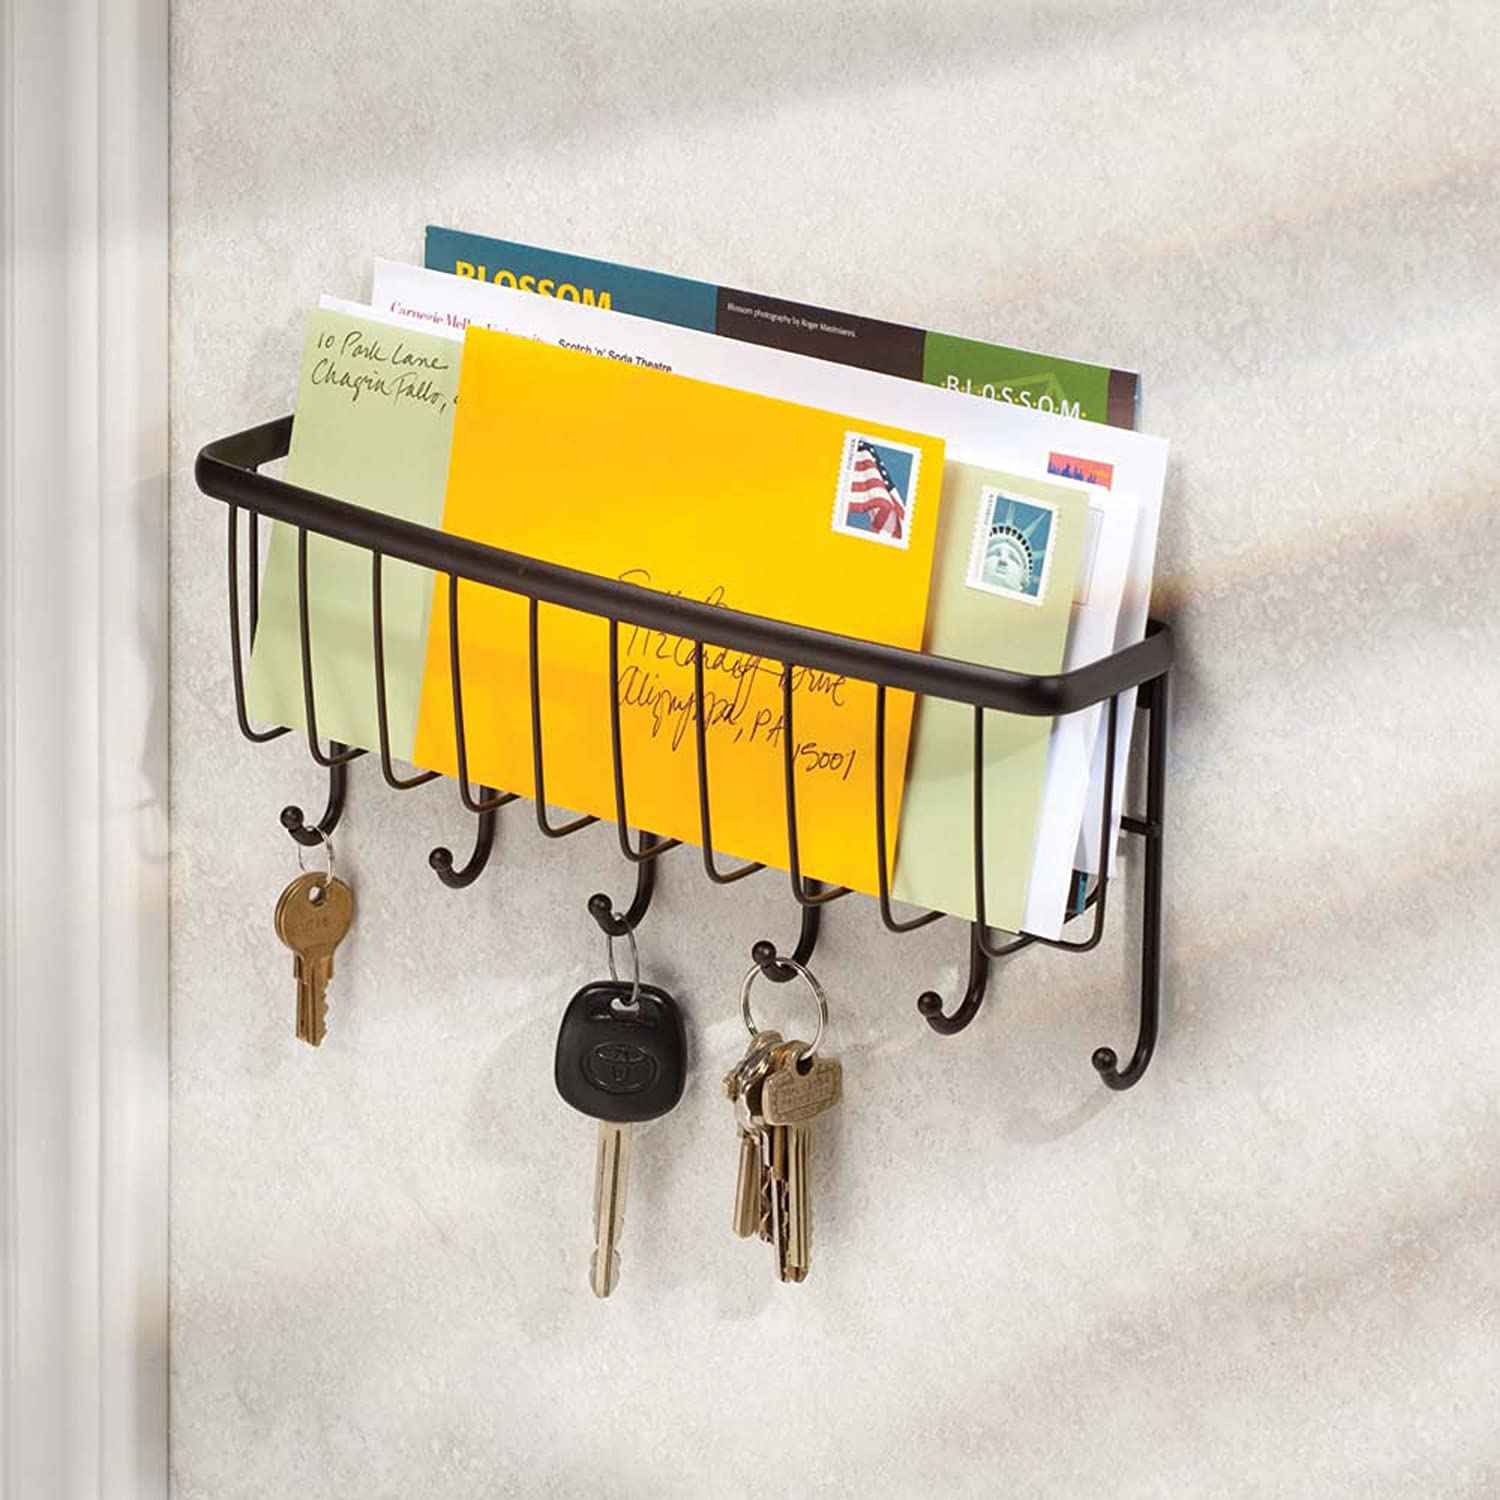 Wall Key Racks for Home and Office: Decorative and Animal